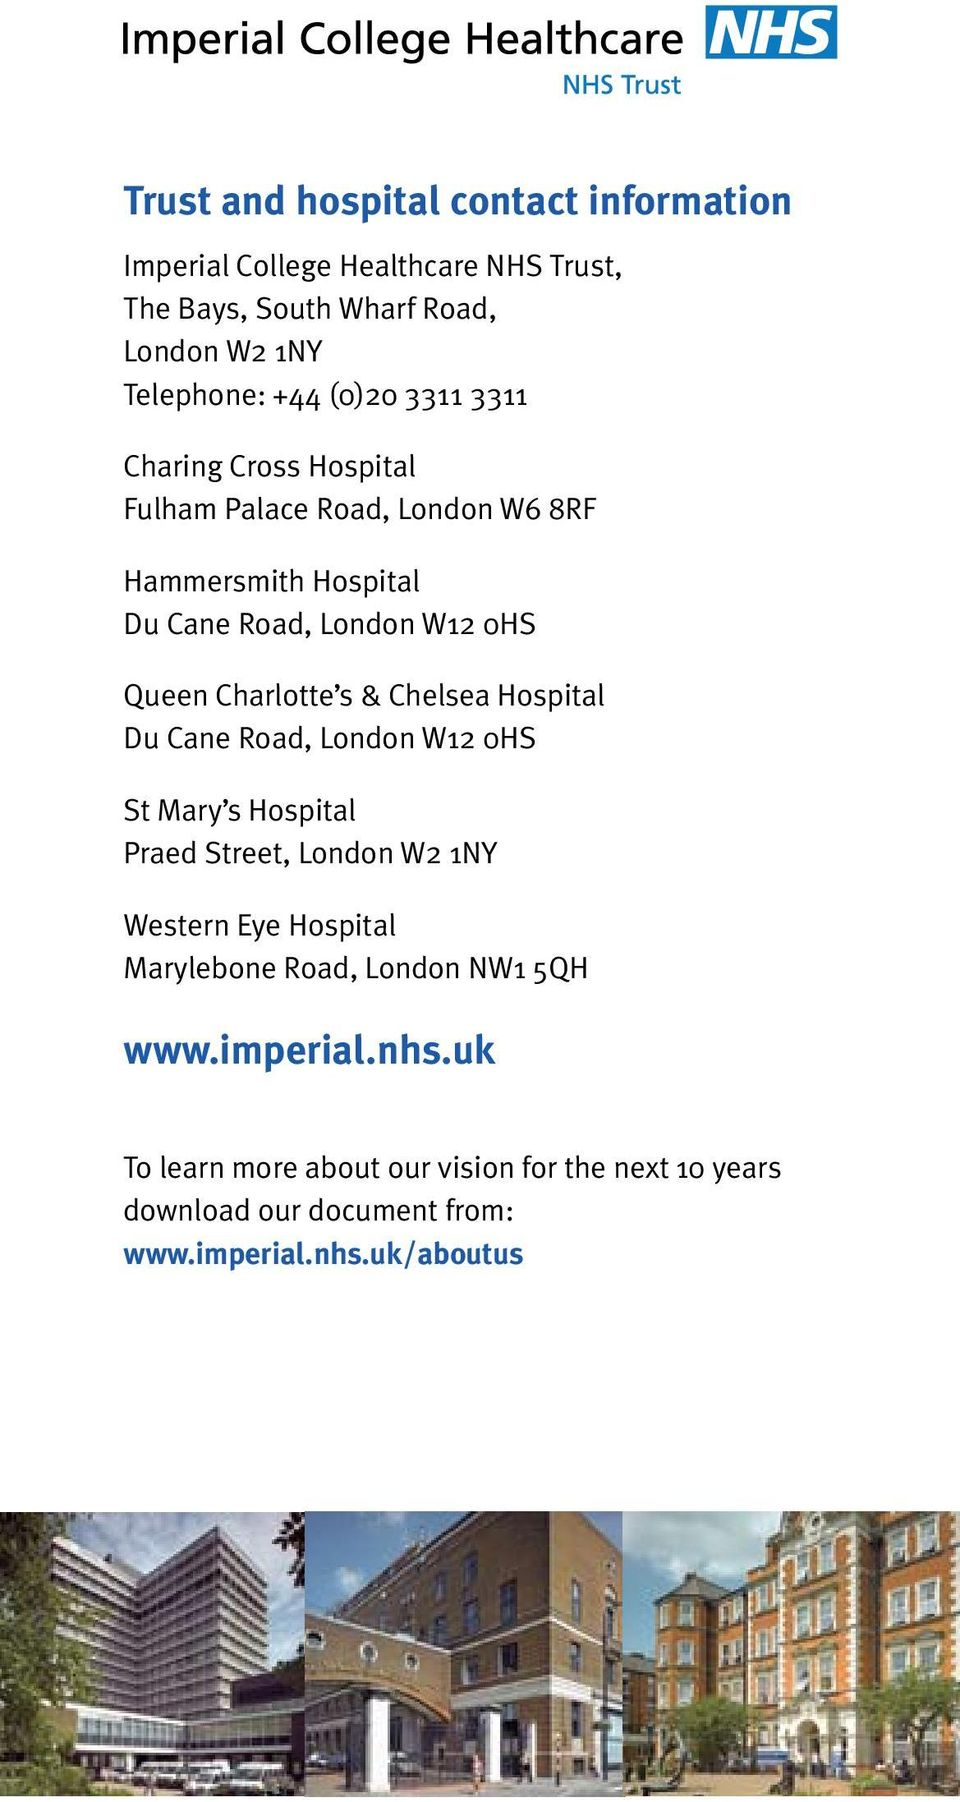 Charlotte s & Chelsea Hospital Du Cane Road, London W12 0HS St Mary s Hospital Praed Street, London W2 1NY Western Eye Hospital